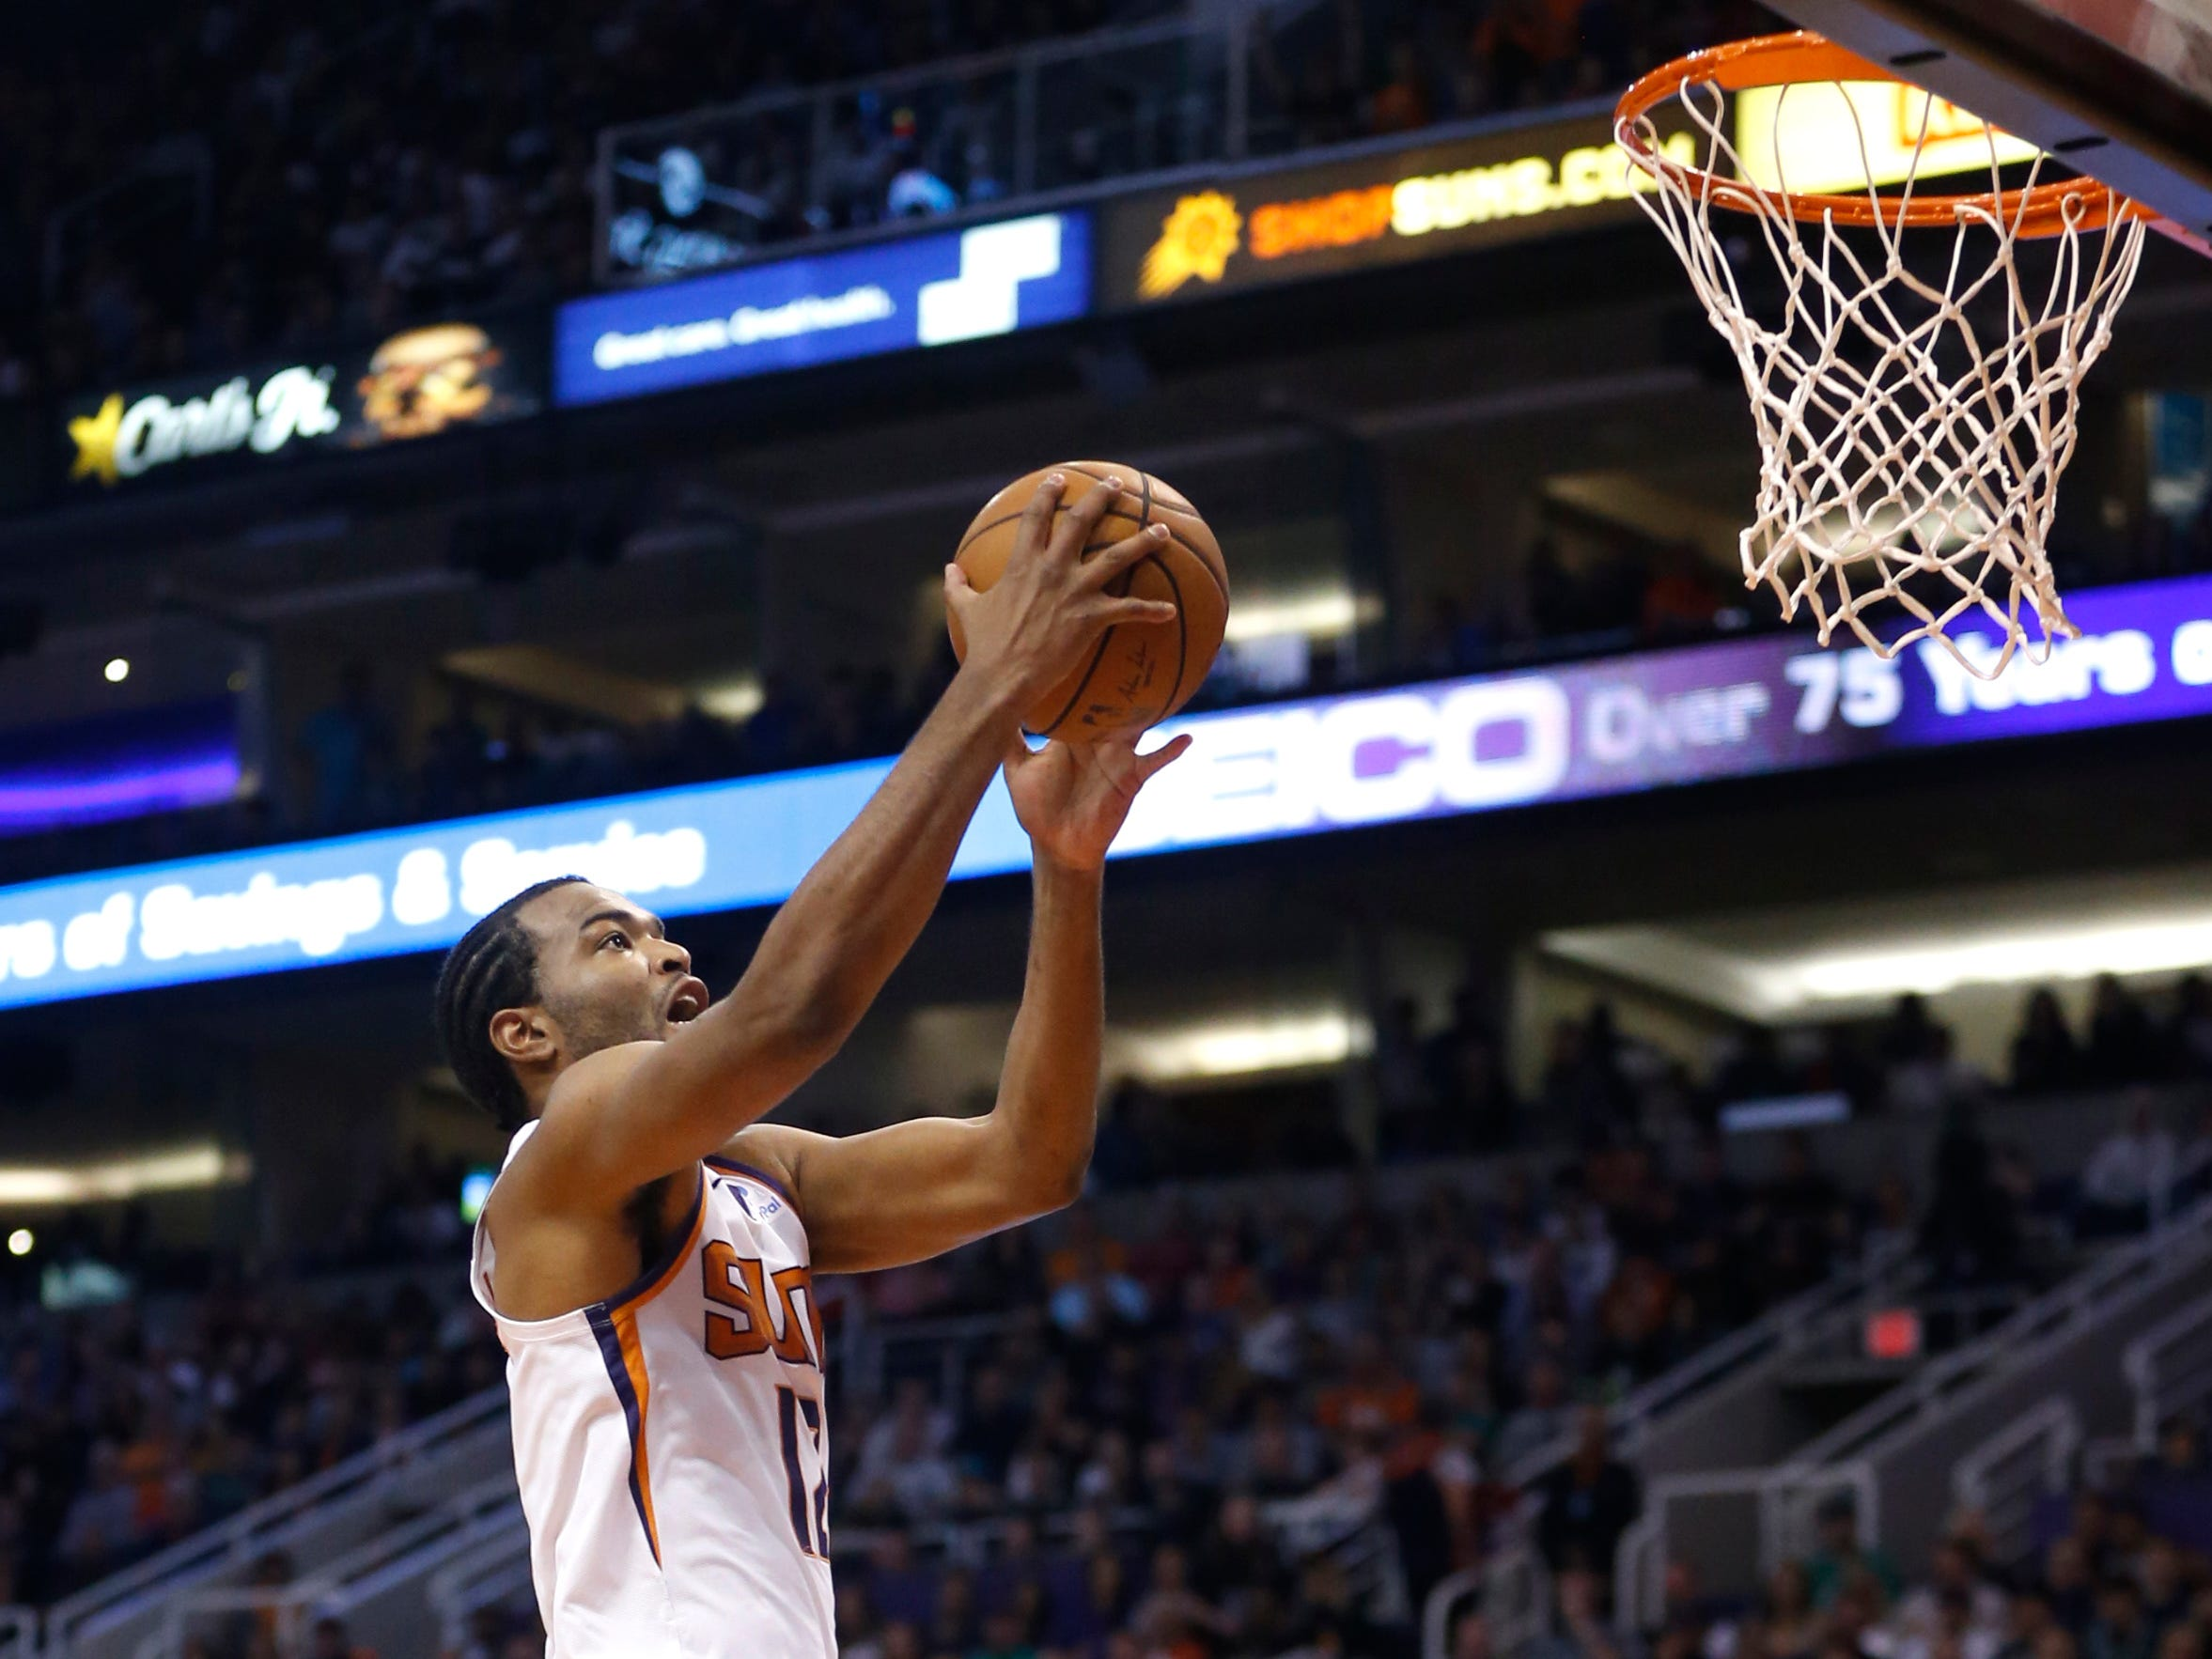 Suns' TJ Warren (12) makes a layup against the Celtics during the first half at Talking Stick Resort Arena in Phoenix, Ariz. on November 8, 2018.